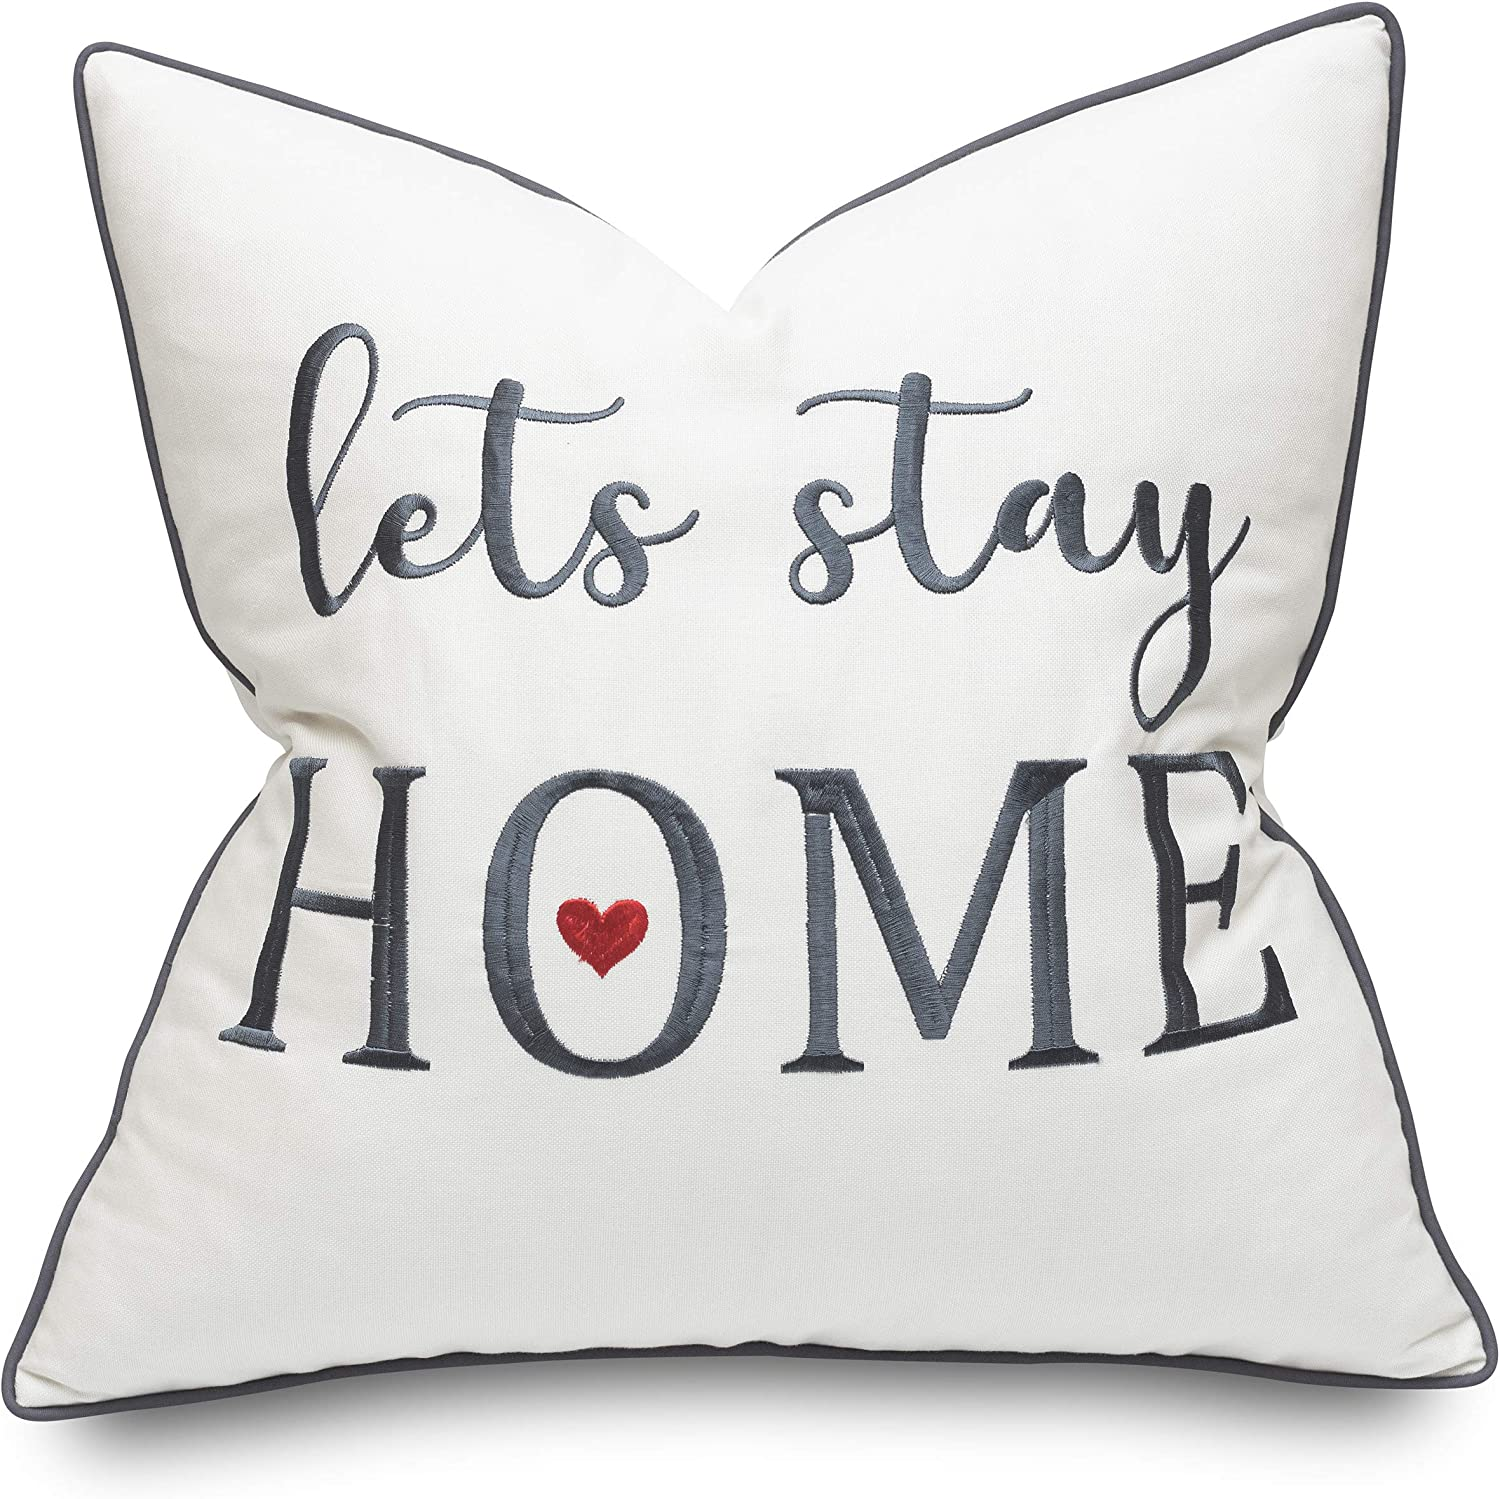 Rudransha Lets Stay Home 18x18 Embroidered Square Accent Throw Pillow Cover - Ivory